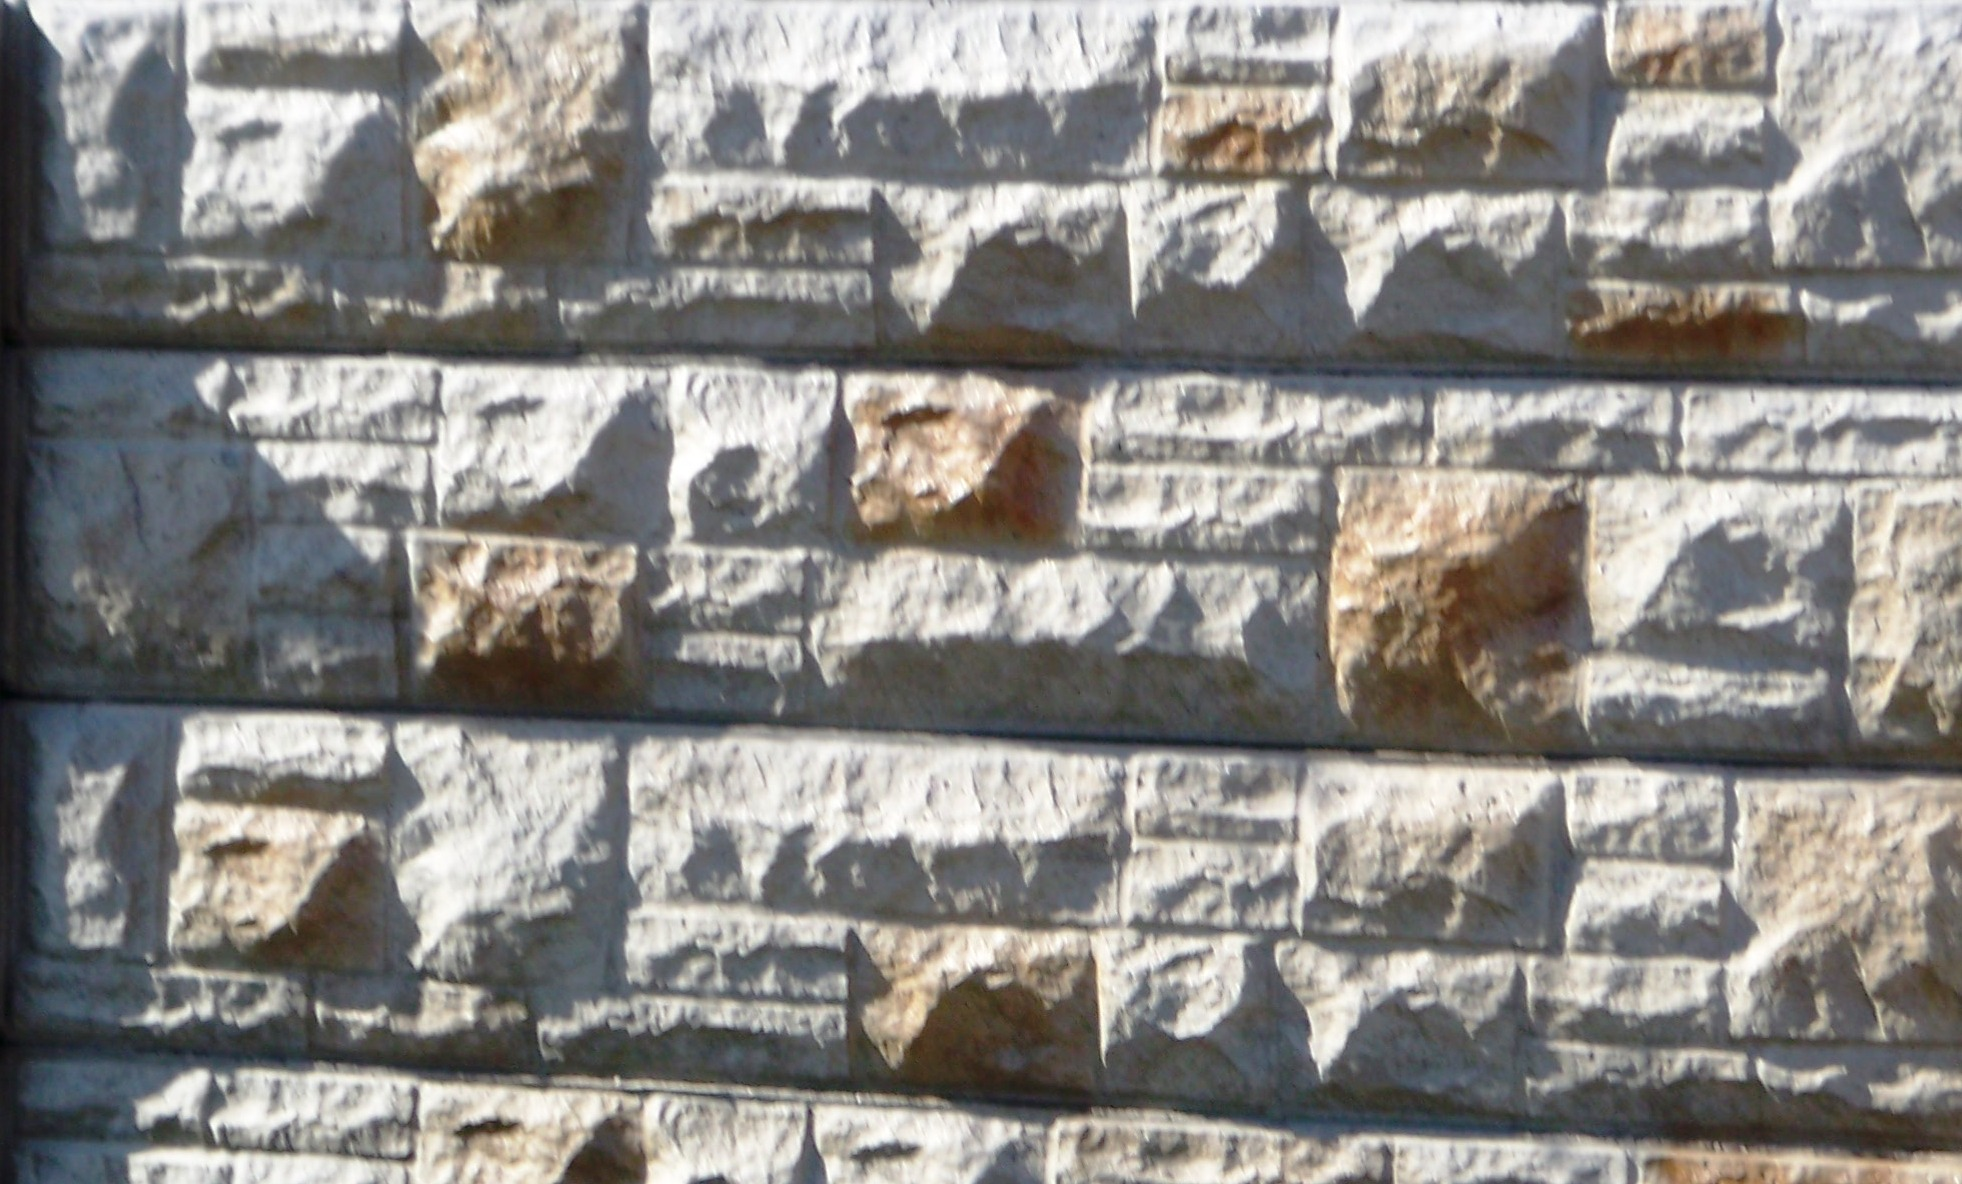 Ashlar stone precast concrete wall system precast concrete wall precast concrete concrete fence concrete sound wall publicscrutiny Image collections